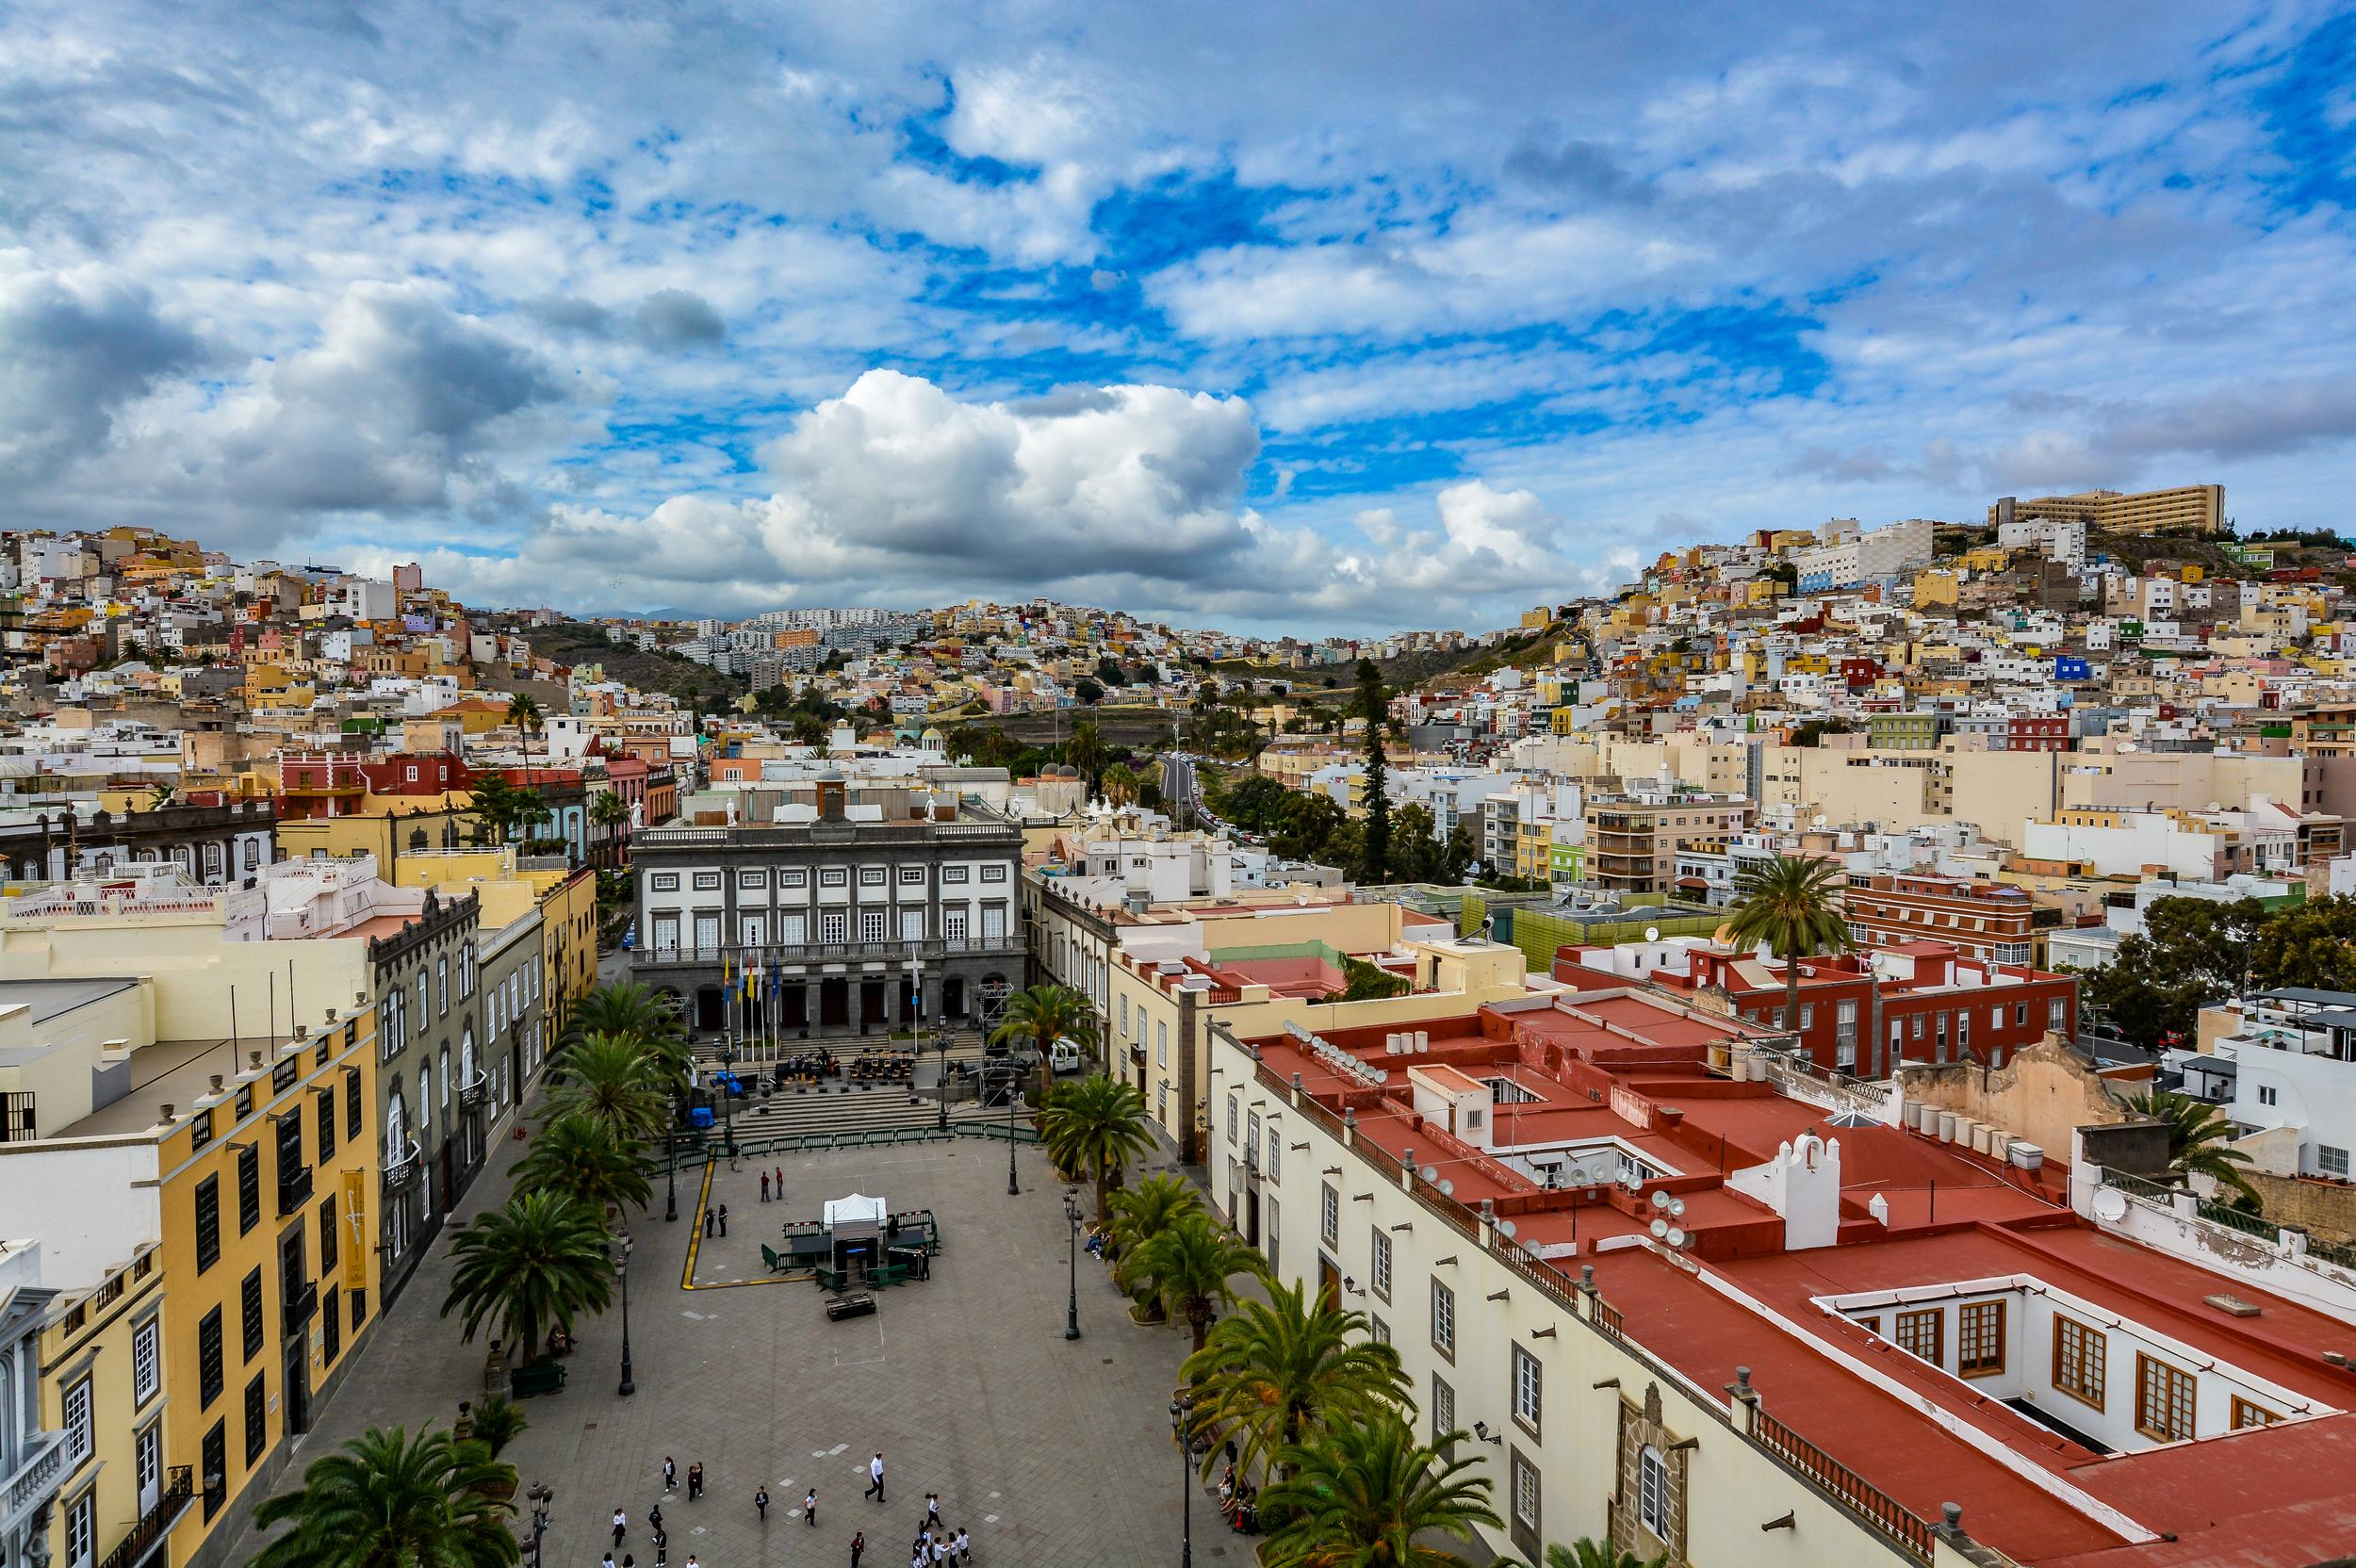 """<p>With a stunning beach, stylish boutiques and a host of bars you won't be short of things to do in Las Palmas. The city is also home to a wide variety of cultures including influences from both the Mediterranean and north Africa.</p>  <p>TripAdvisor recommendsthe <a href=""""https://www.tripadvisor.co.uk/AttractionProductDetail-g187471-d11453664-Vegueta_Walking_Tour_Including_Canarian_Tapas-Gran_Canaria_Canary_Islands.html?from_tpa=true"""" target=""""_blank"""">Vegueta Walking Tour which includes Canarian Tapas</a>, bookable from £23 per person.</p>"""